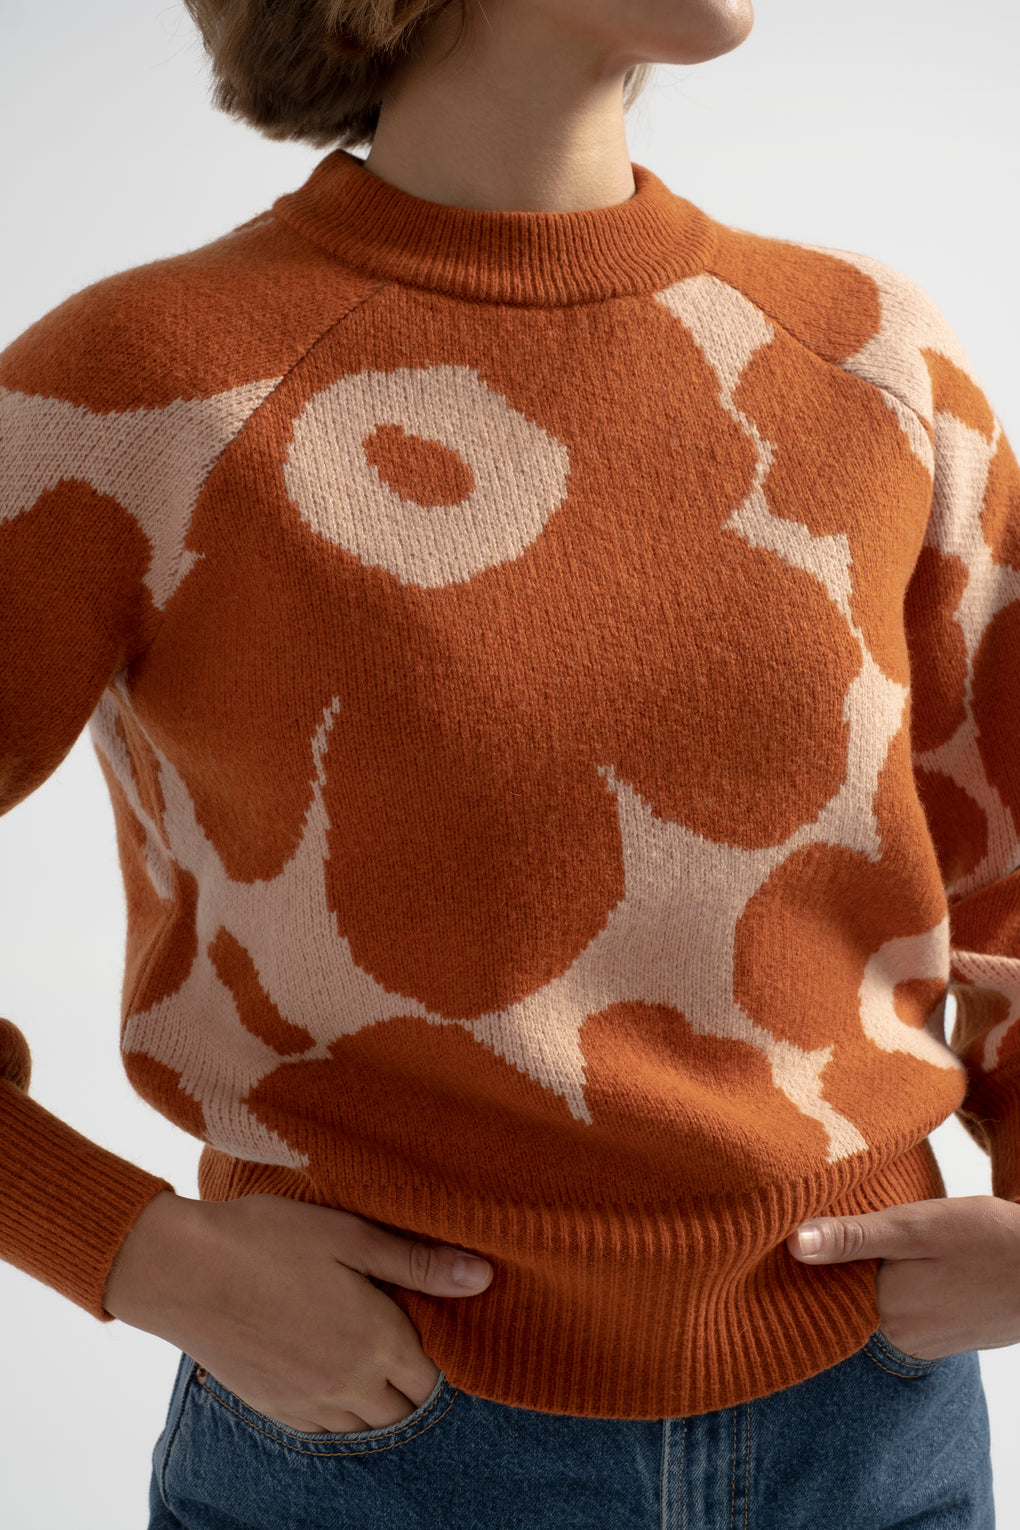 Marimekko-Marimekko Kietoa Unikko Knit Sweater-Marimekko floral sweater-orange floral sweater-Idun-St. Paul